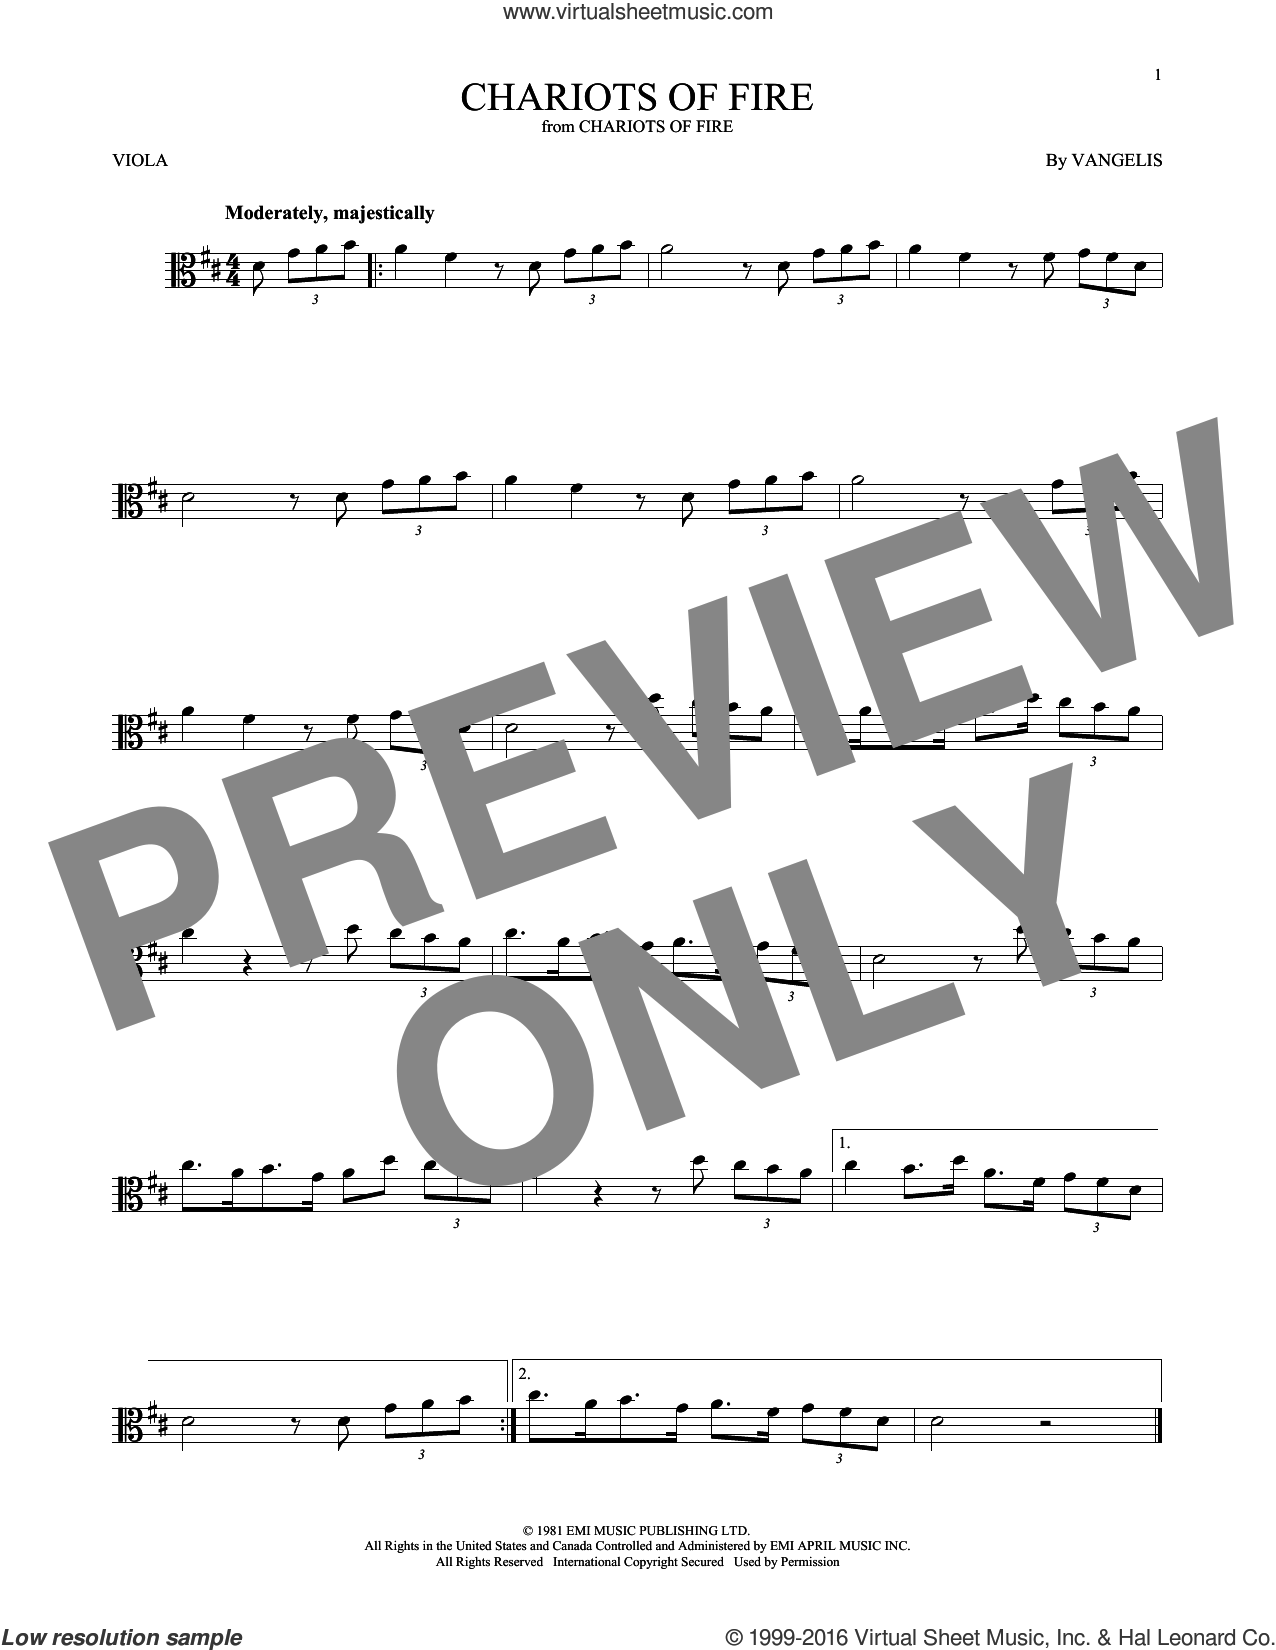 Chariots Of Fire sheet music for viola solo by Vangelis, intermediate skill level